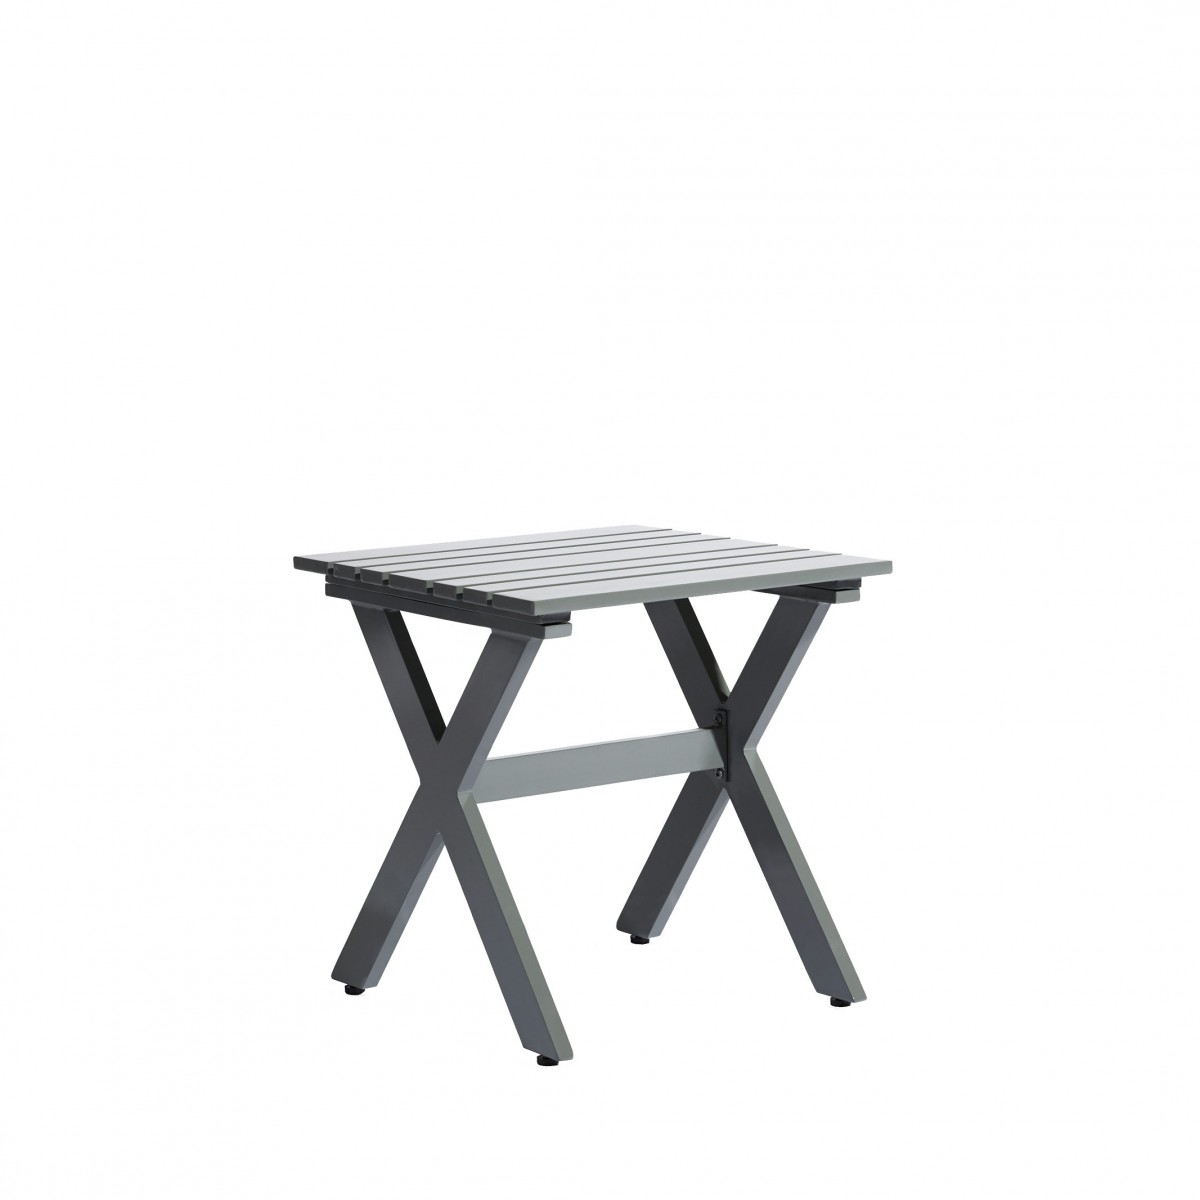 graphic side table stori modern outdoor grey piece and chairs turquoise accent pieces mcm furniture black white chair art deco desk small industrial end diy wine stoppers target